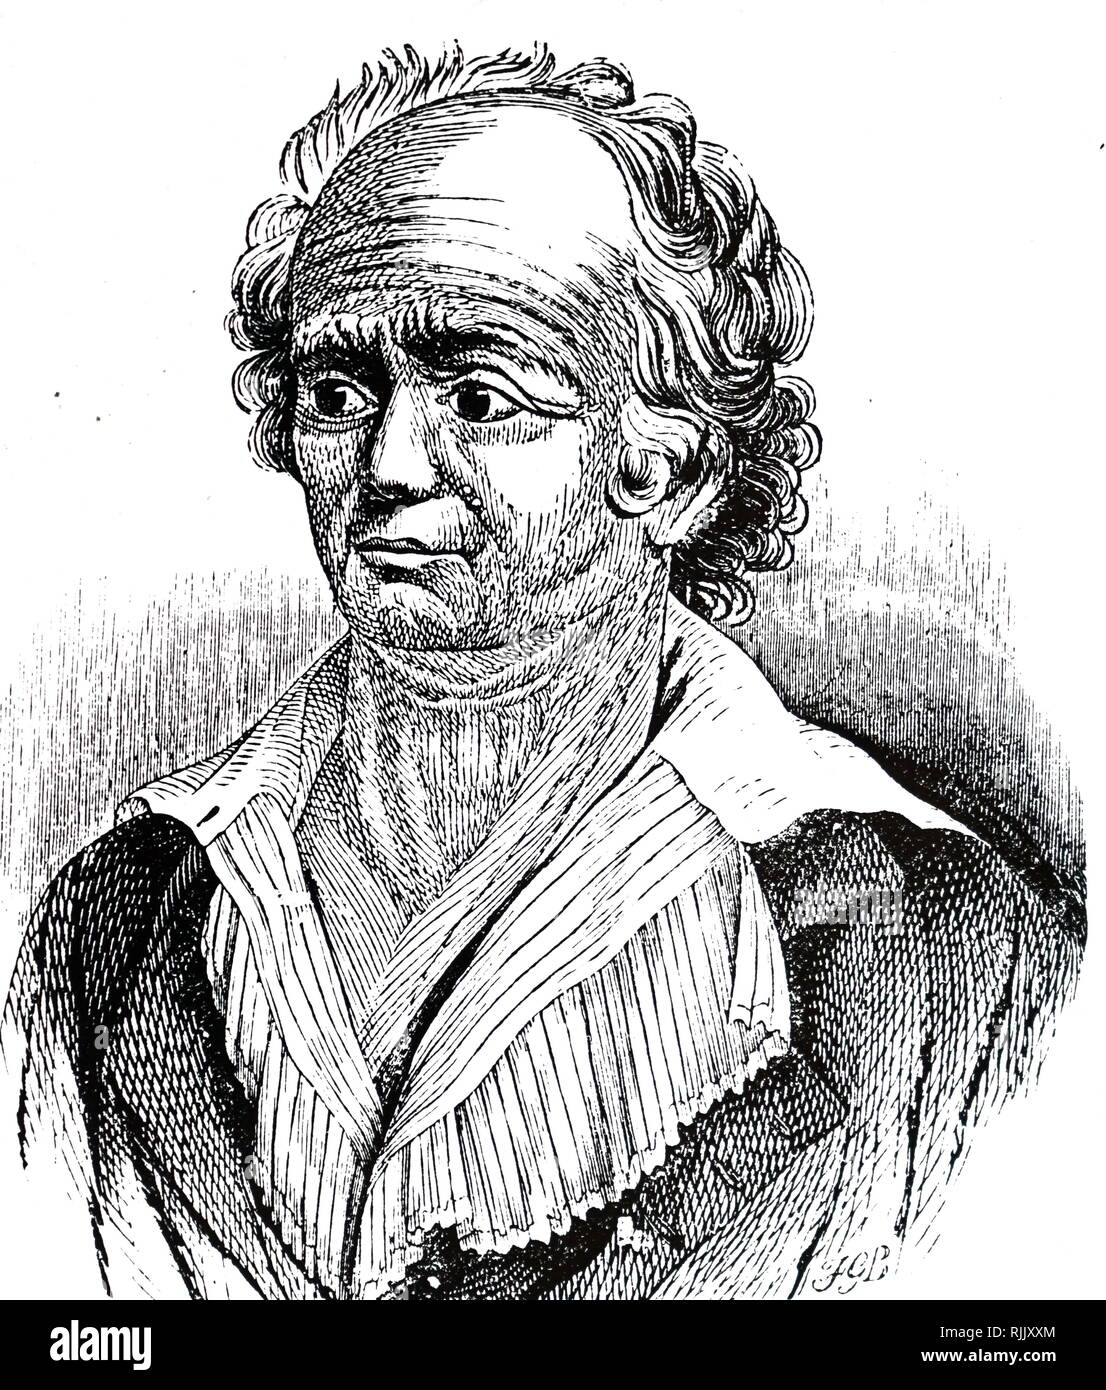 Franz Josef Gall (1758 - 1828); neuroanatomist, physiologist, and pioneer in the study of the localization of mental functions in the brain. Drawing 1851 - Stock Image